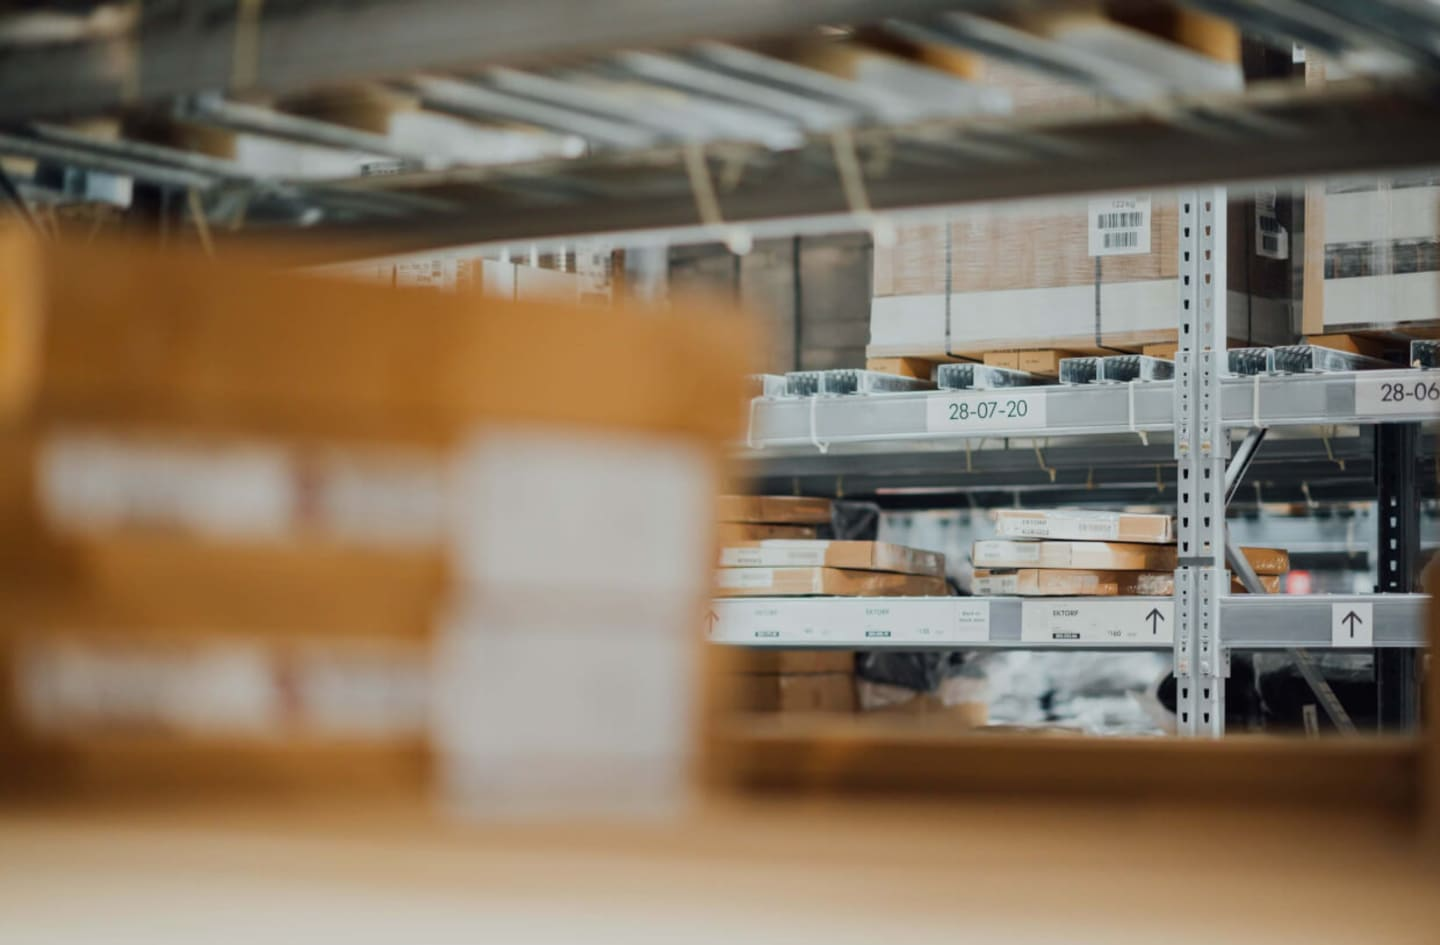 Best Warehouse Security Systems